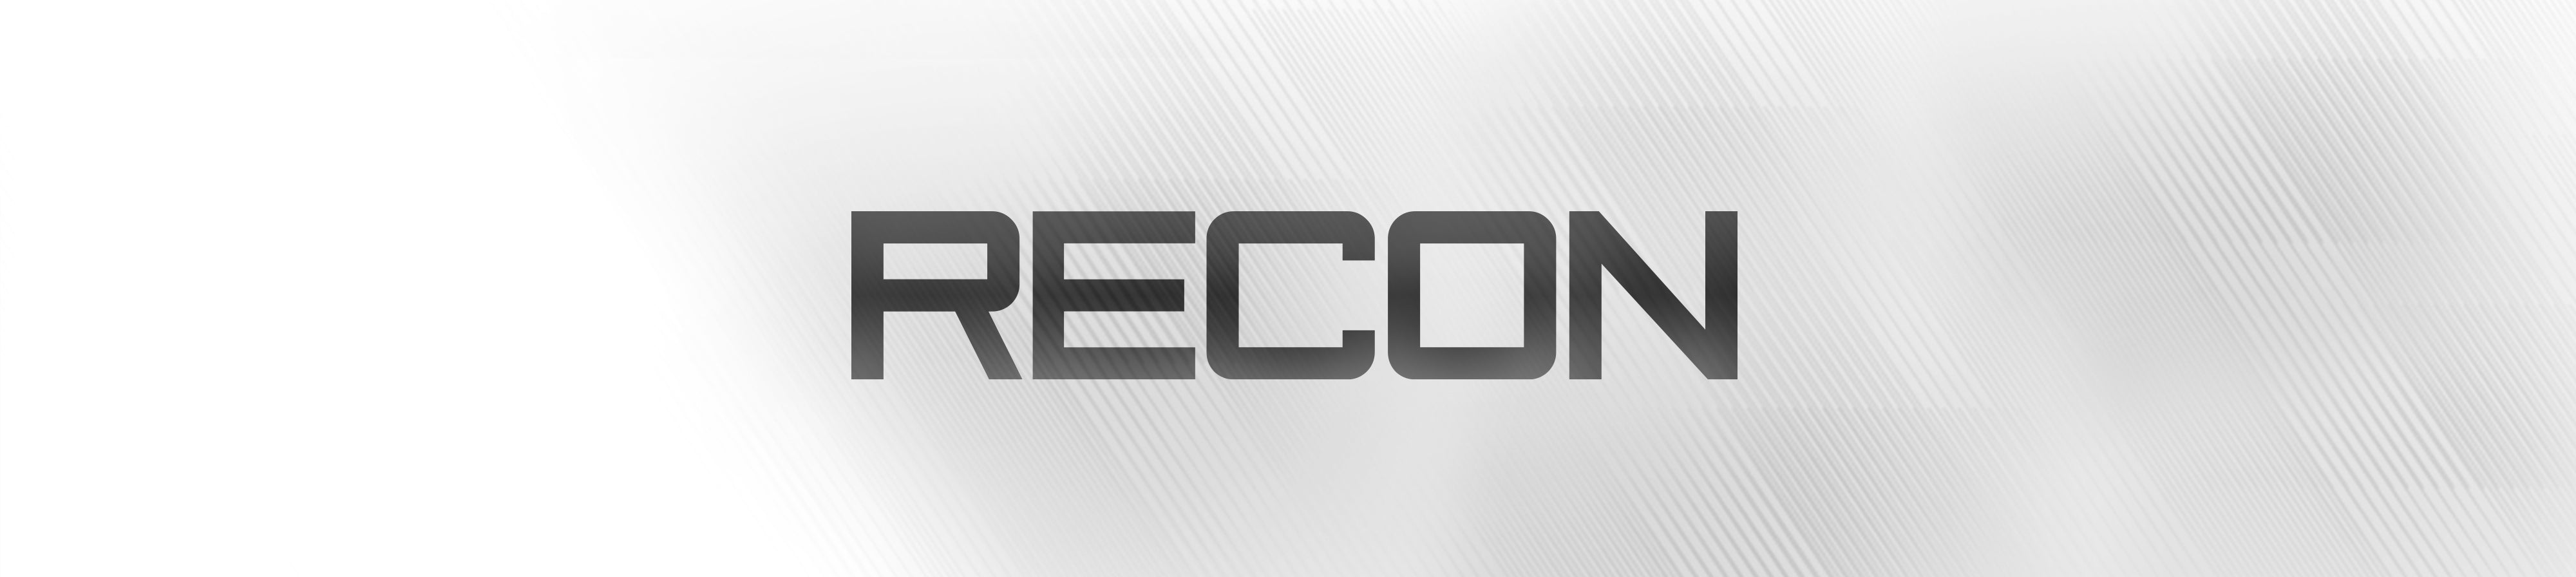 Playstation Recon